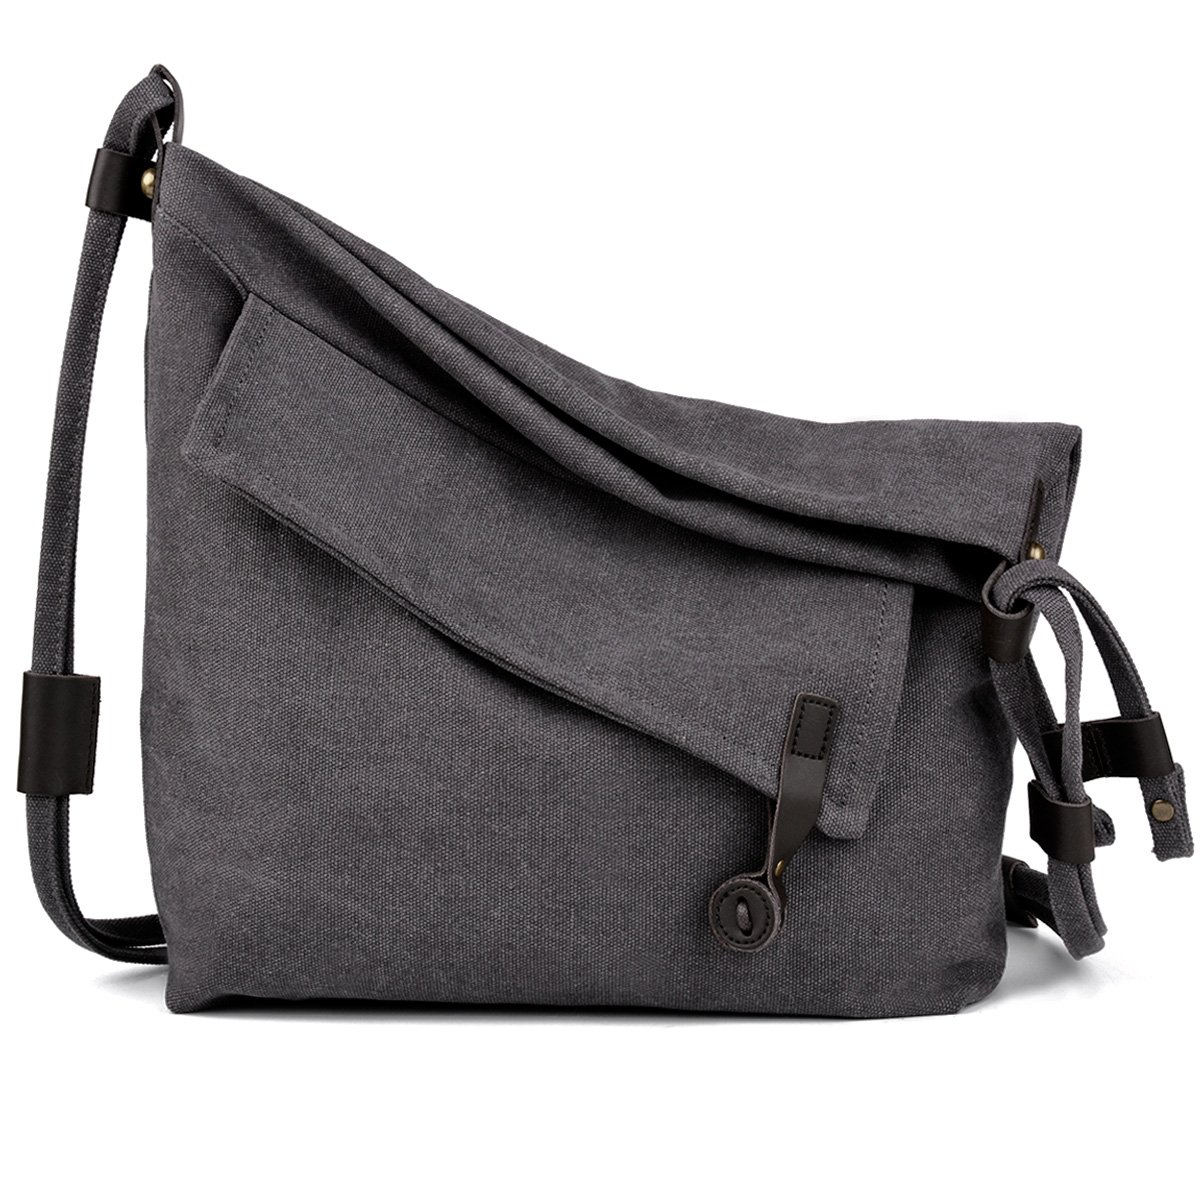 Hobo Crossbody Bag, Coofit Canvas Tote Bags Women Messenger Shoulder Bag Hobo Handbags 114607S770Q75